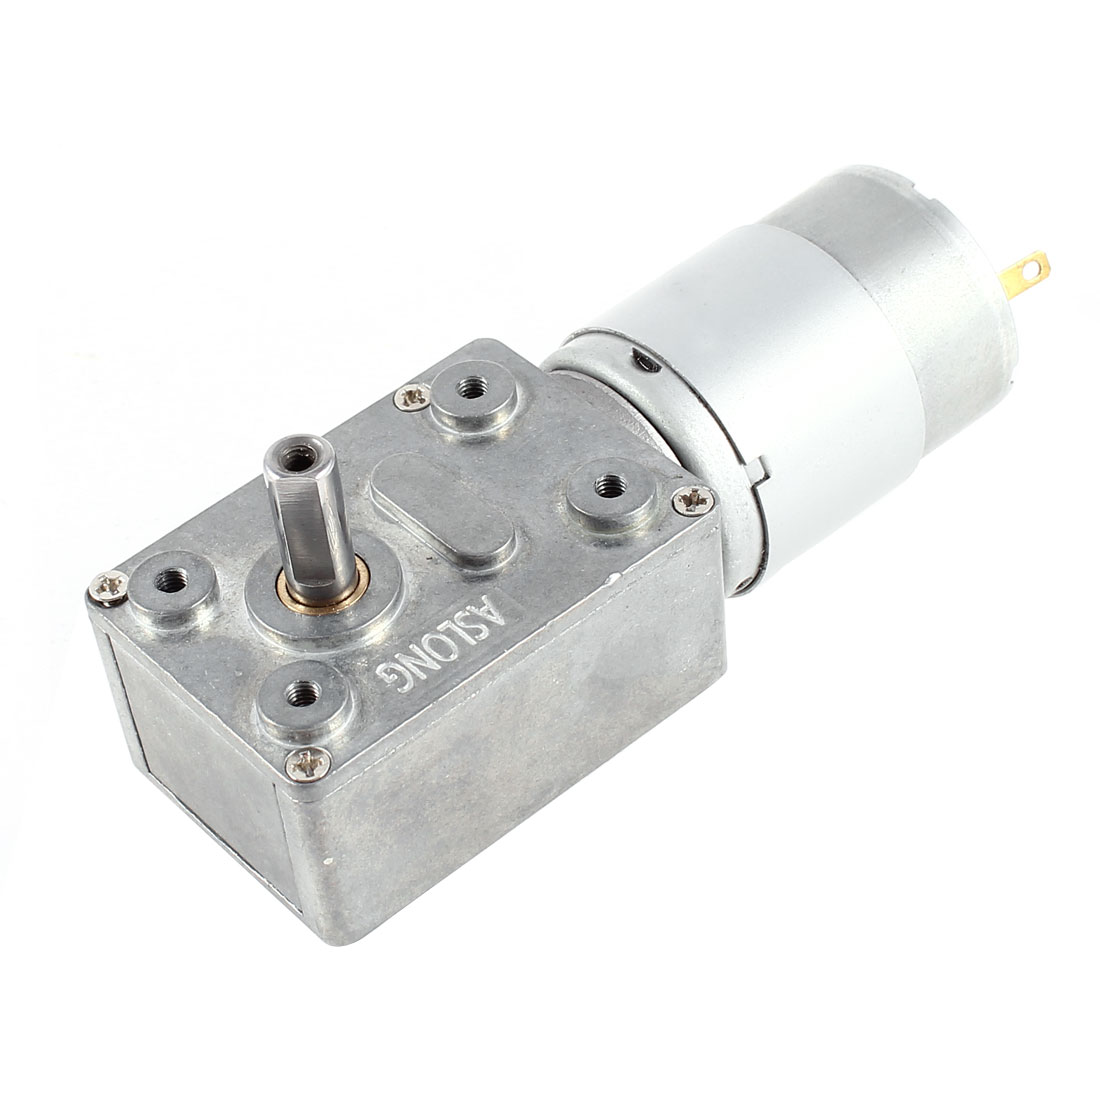 DC 24V 208RPM Metal Shaft Rectangle Shape Gearbox Speed Reduction Electric Motor